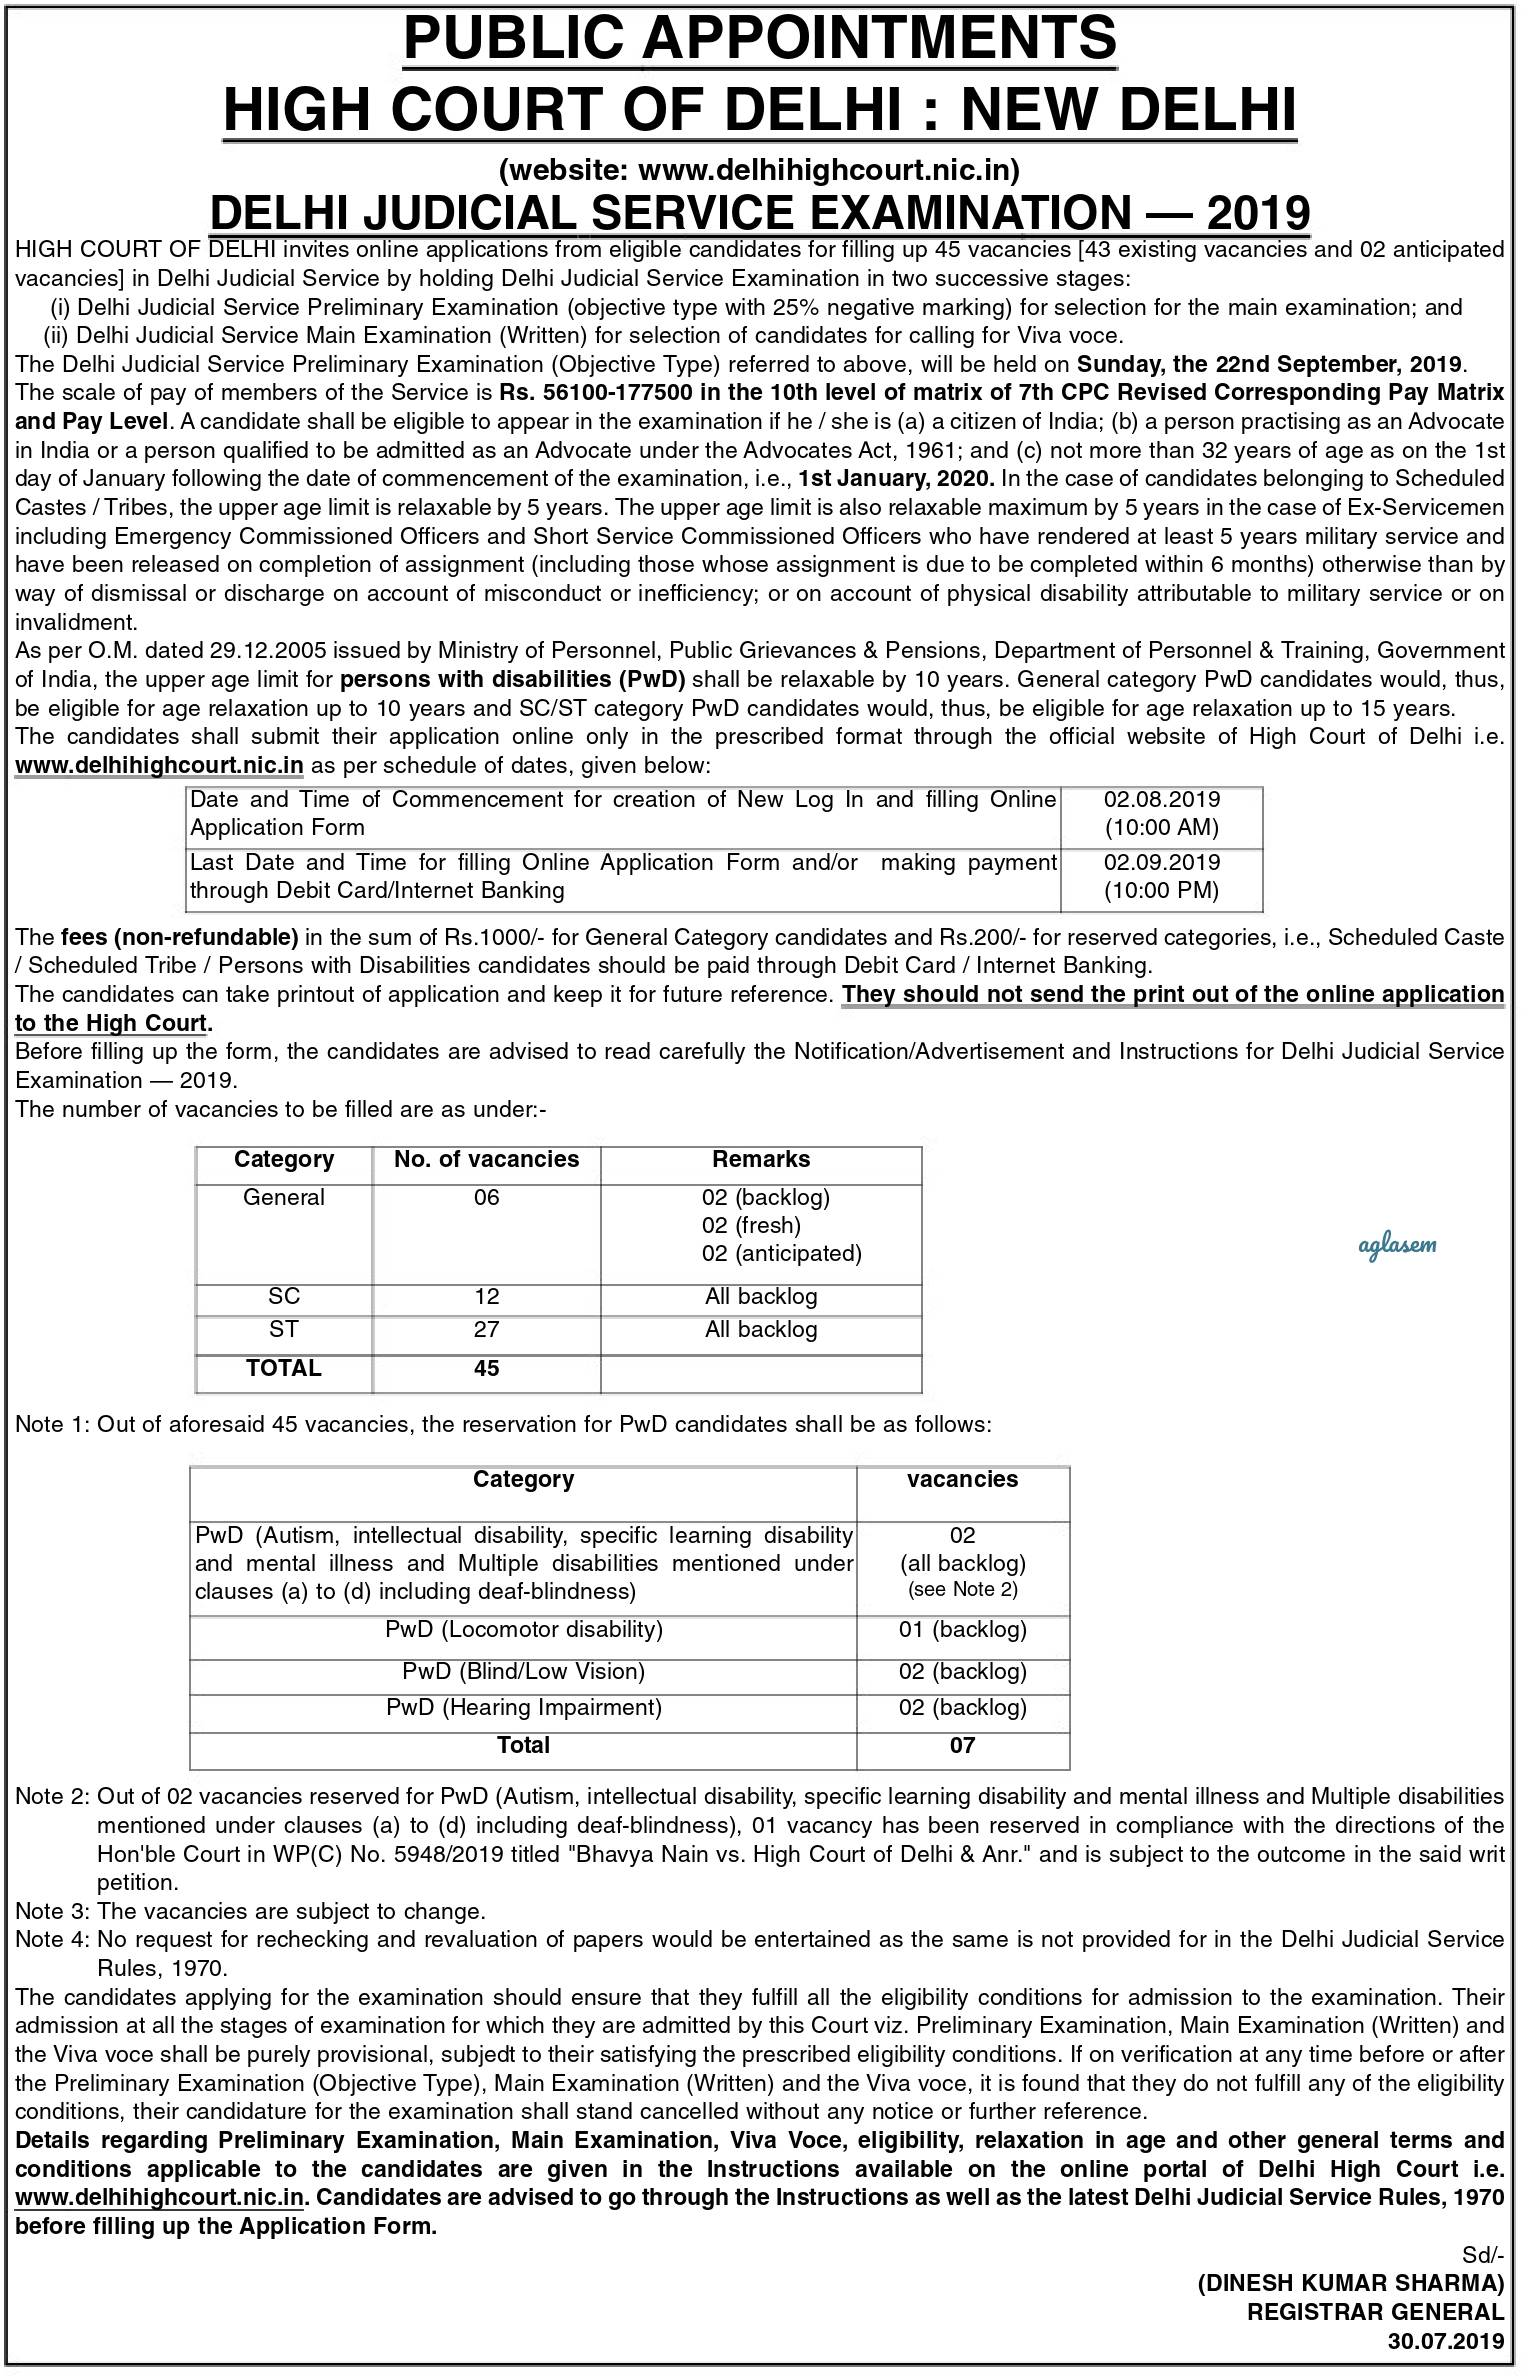 Delhi Judicial Services 2019 Notification